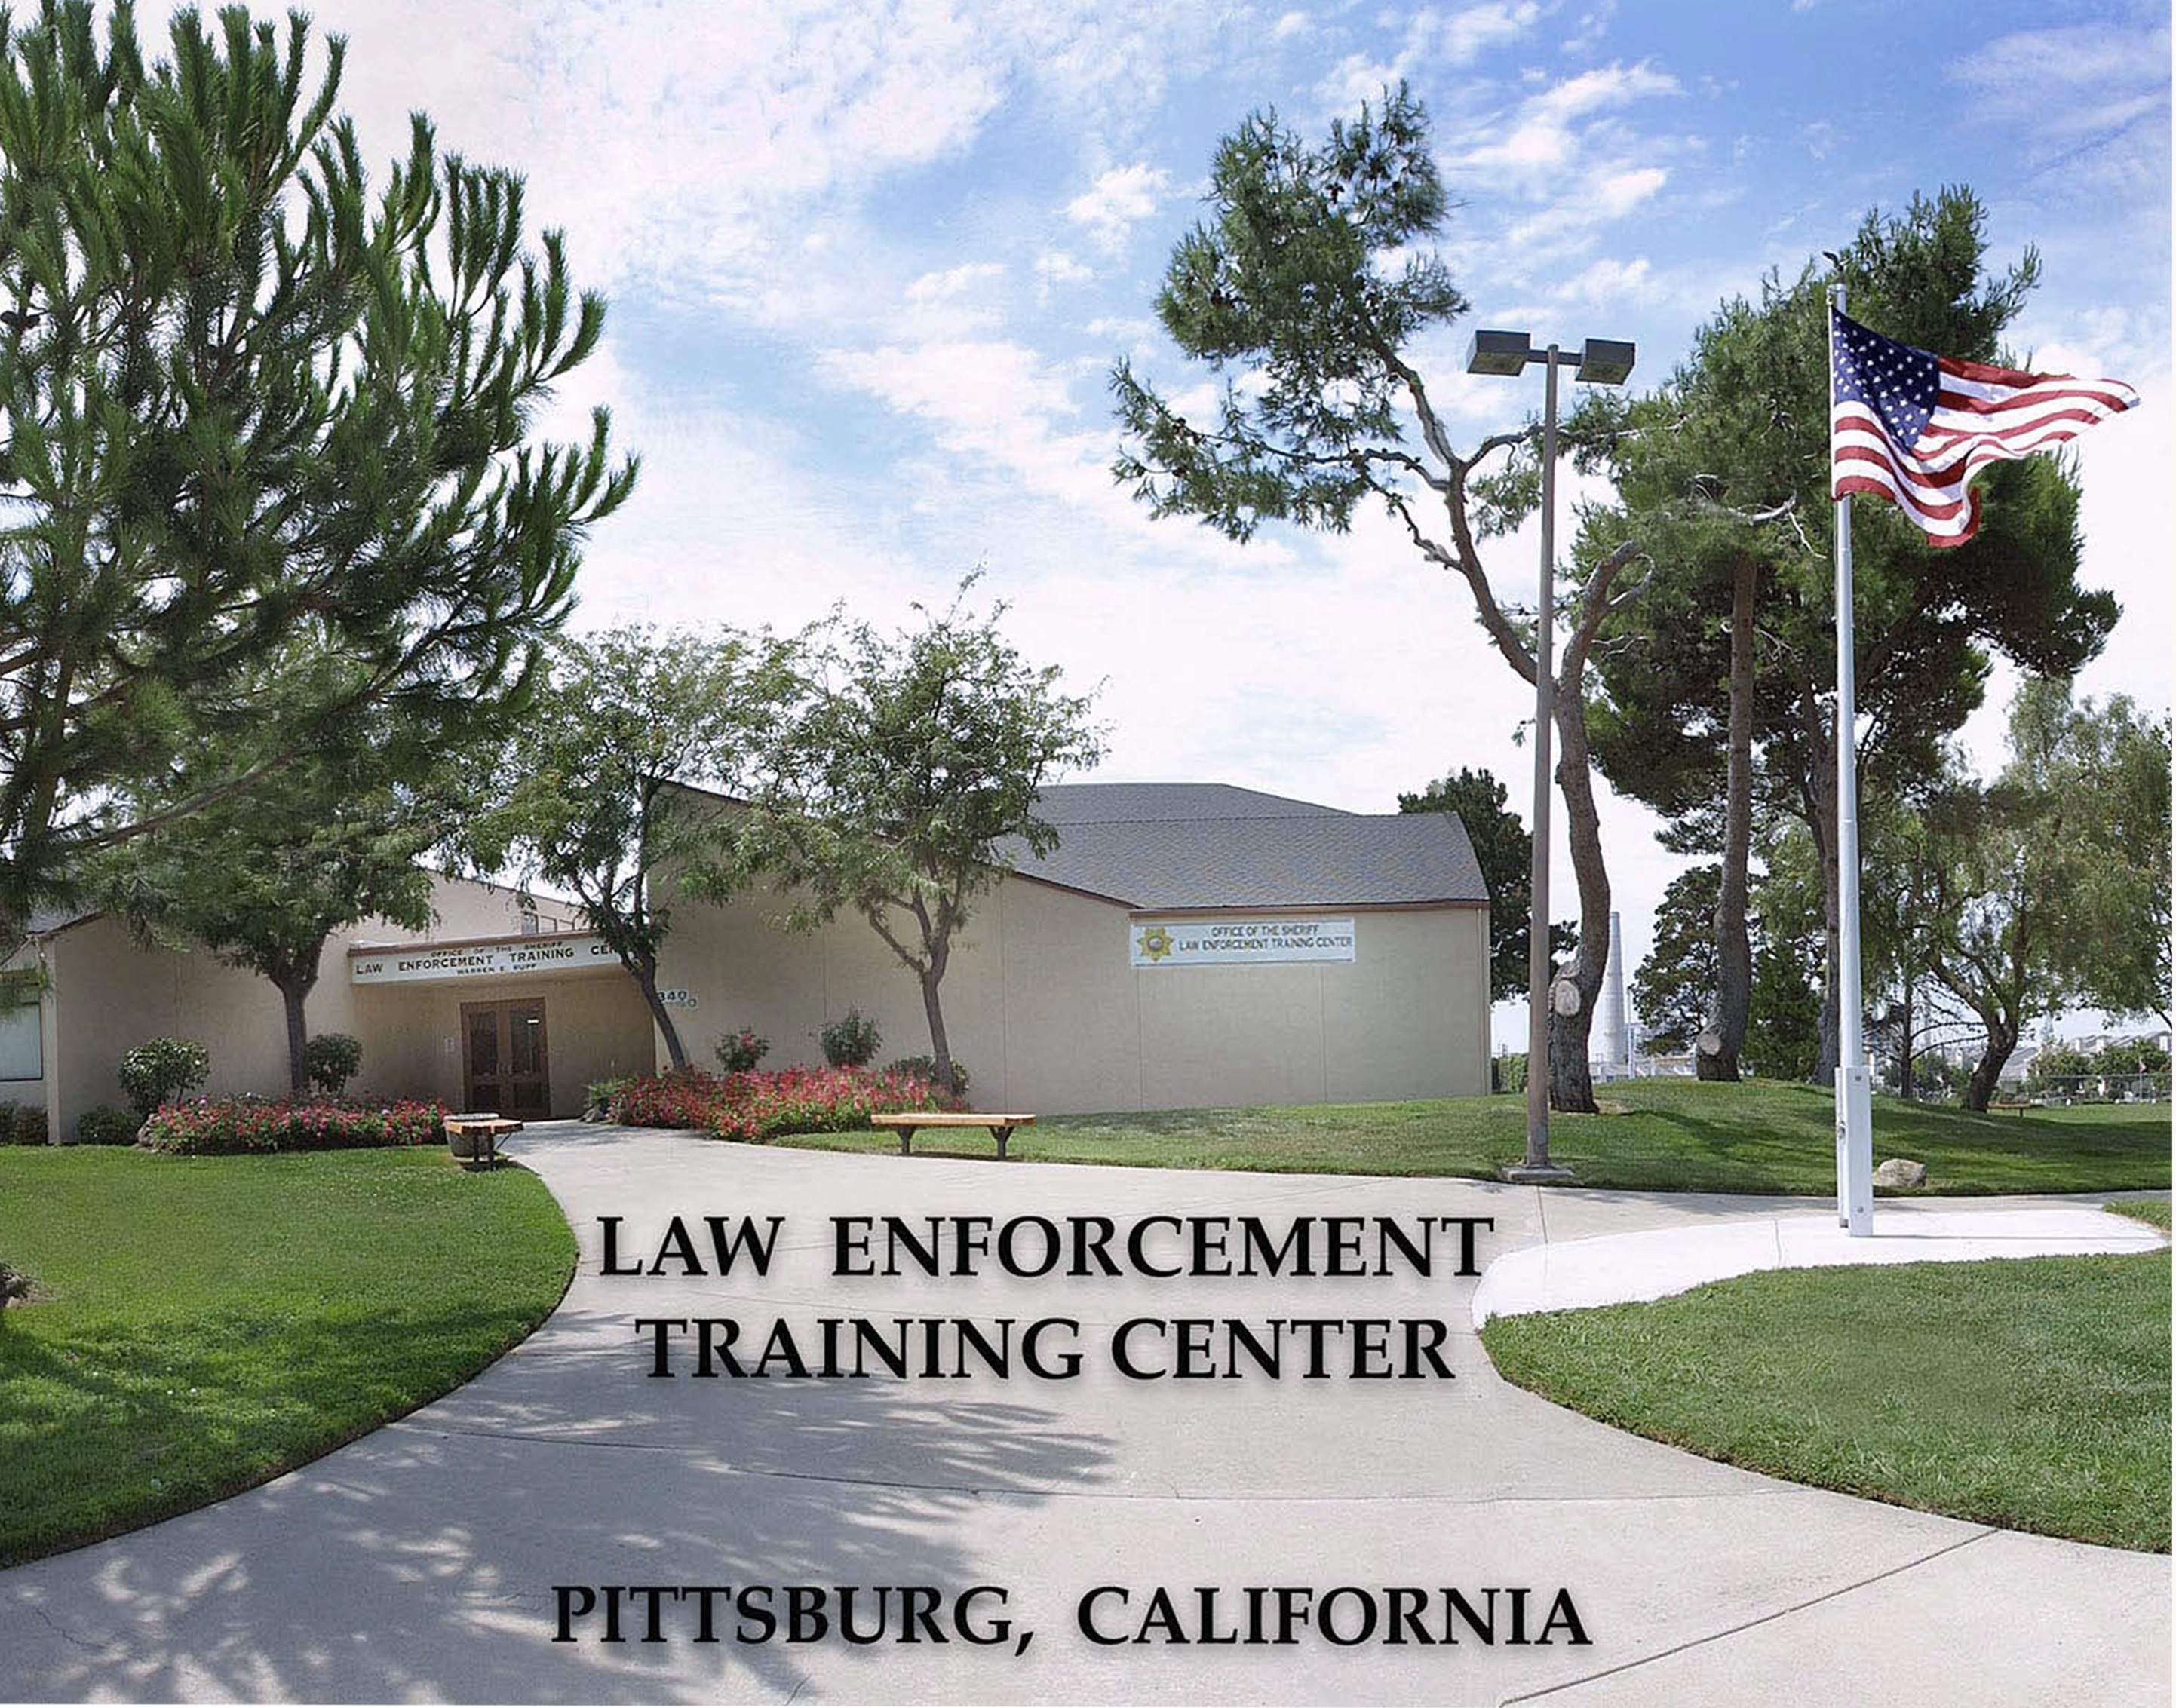 Picture of the front of the Law Enforcement Training Center